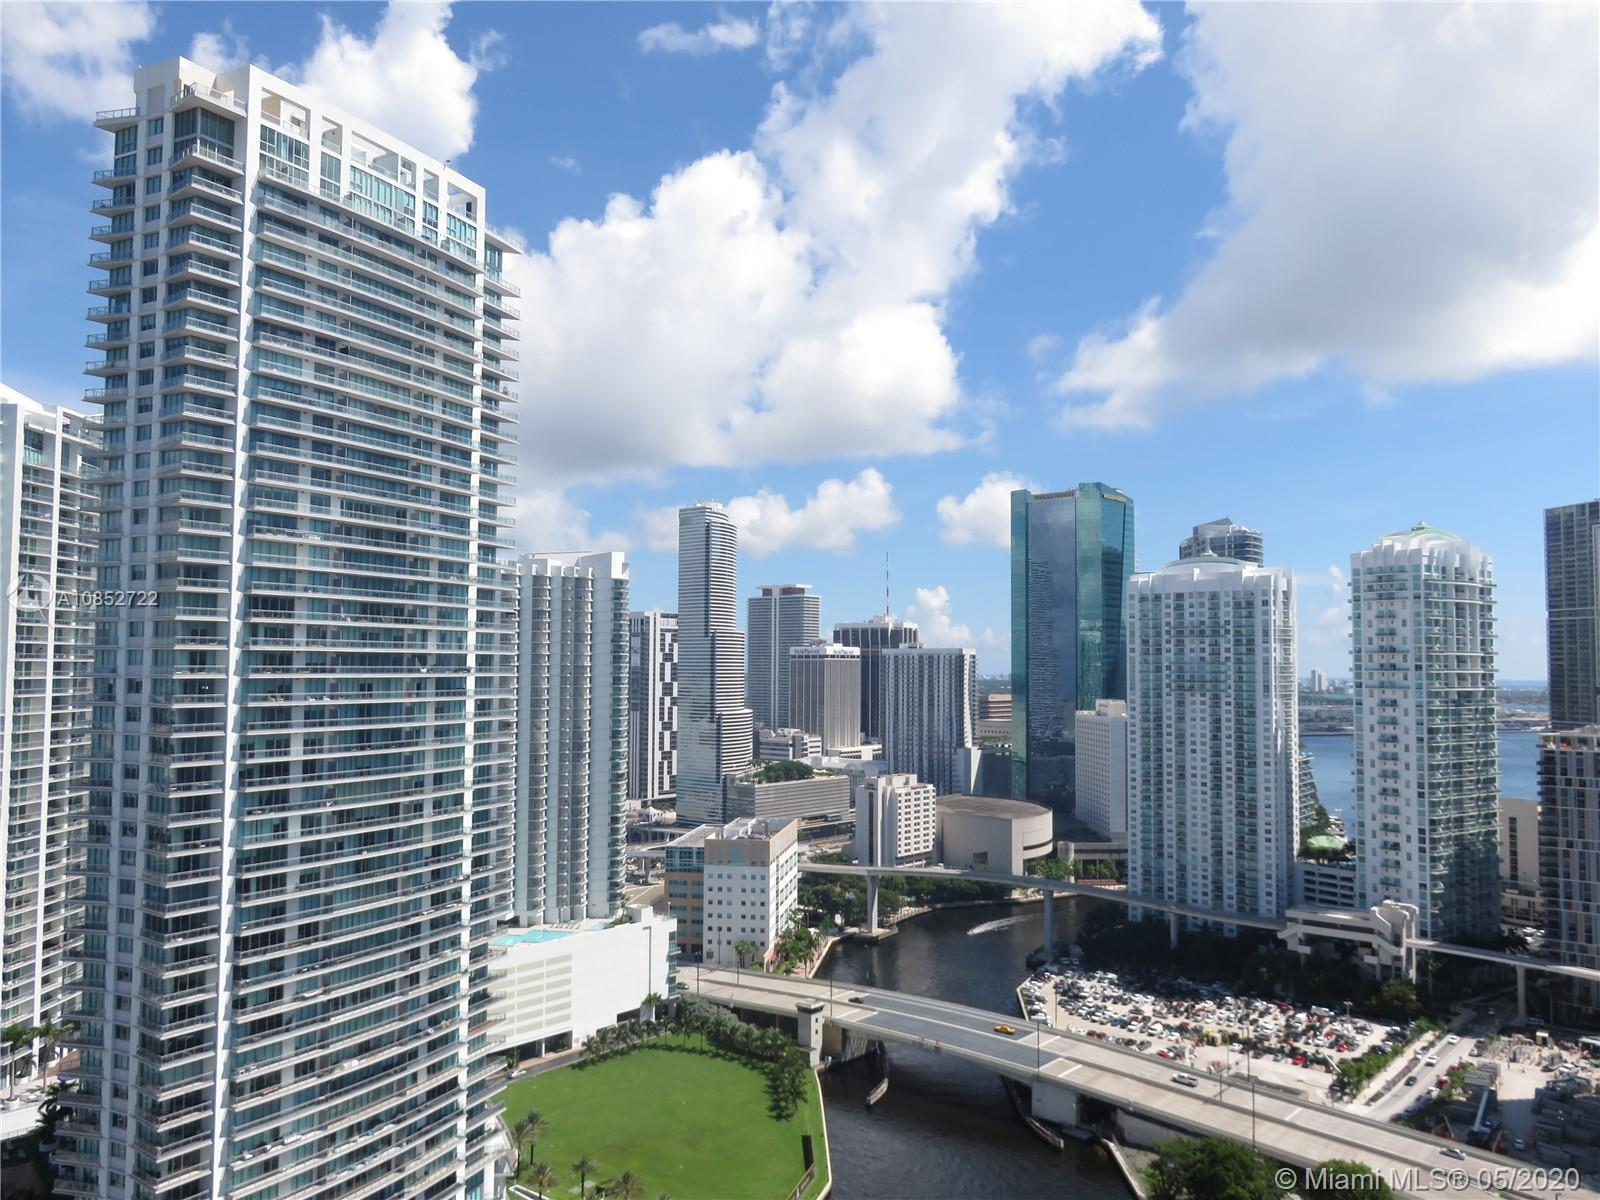 690 SW 1st Ct, Miami, Florida 33130, 1 Bedroom Bedrooms, ,2 BathroomsBathrooms,Residential,For Sale,690 SW 1st Ct,A10852722